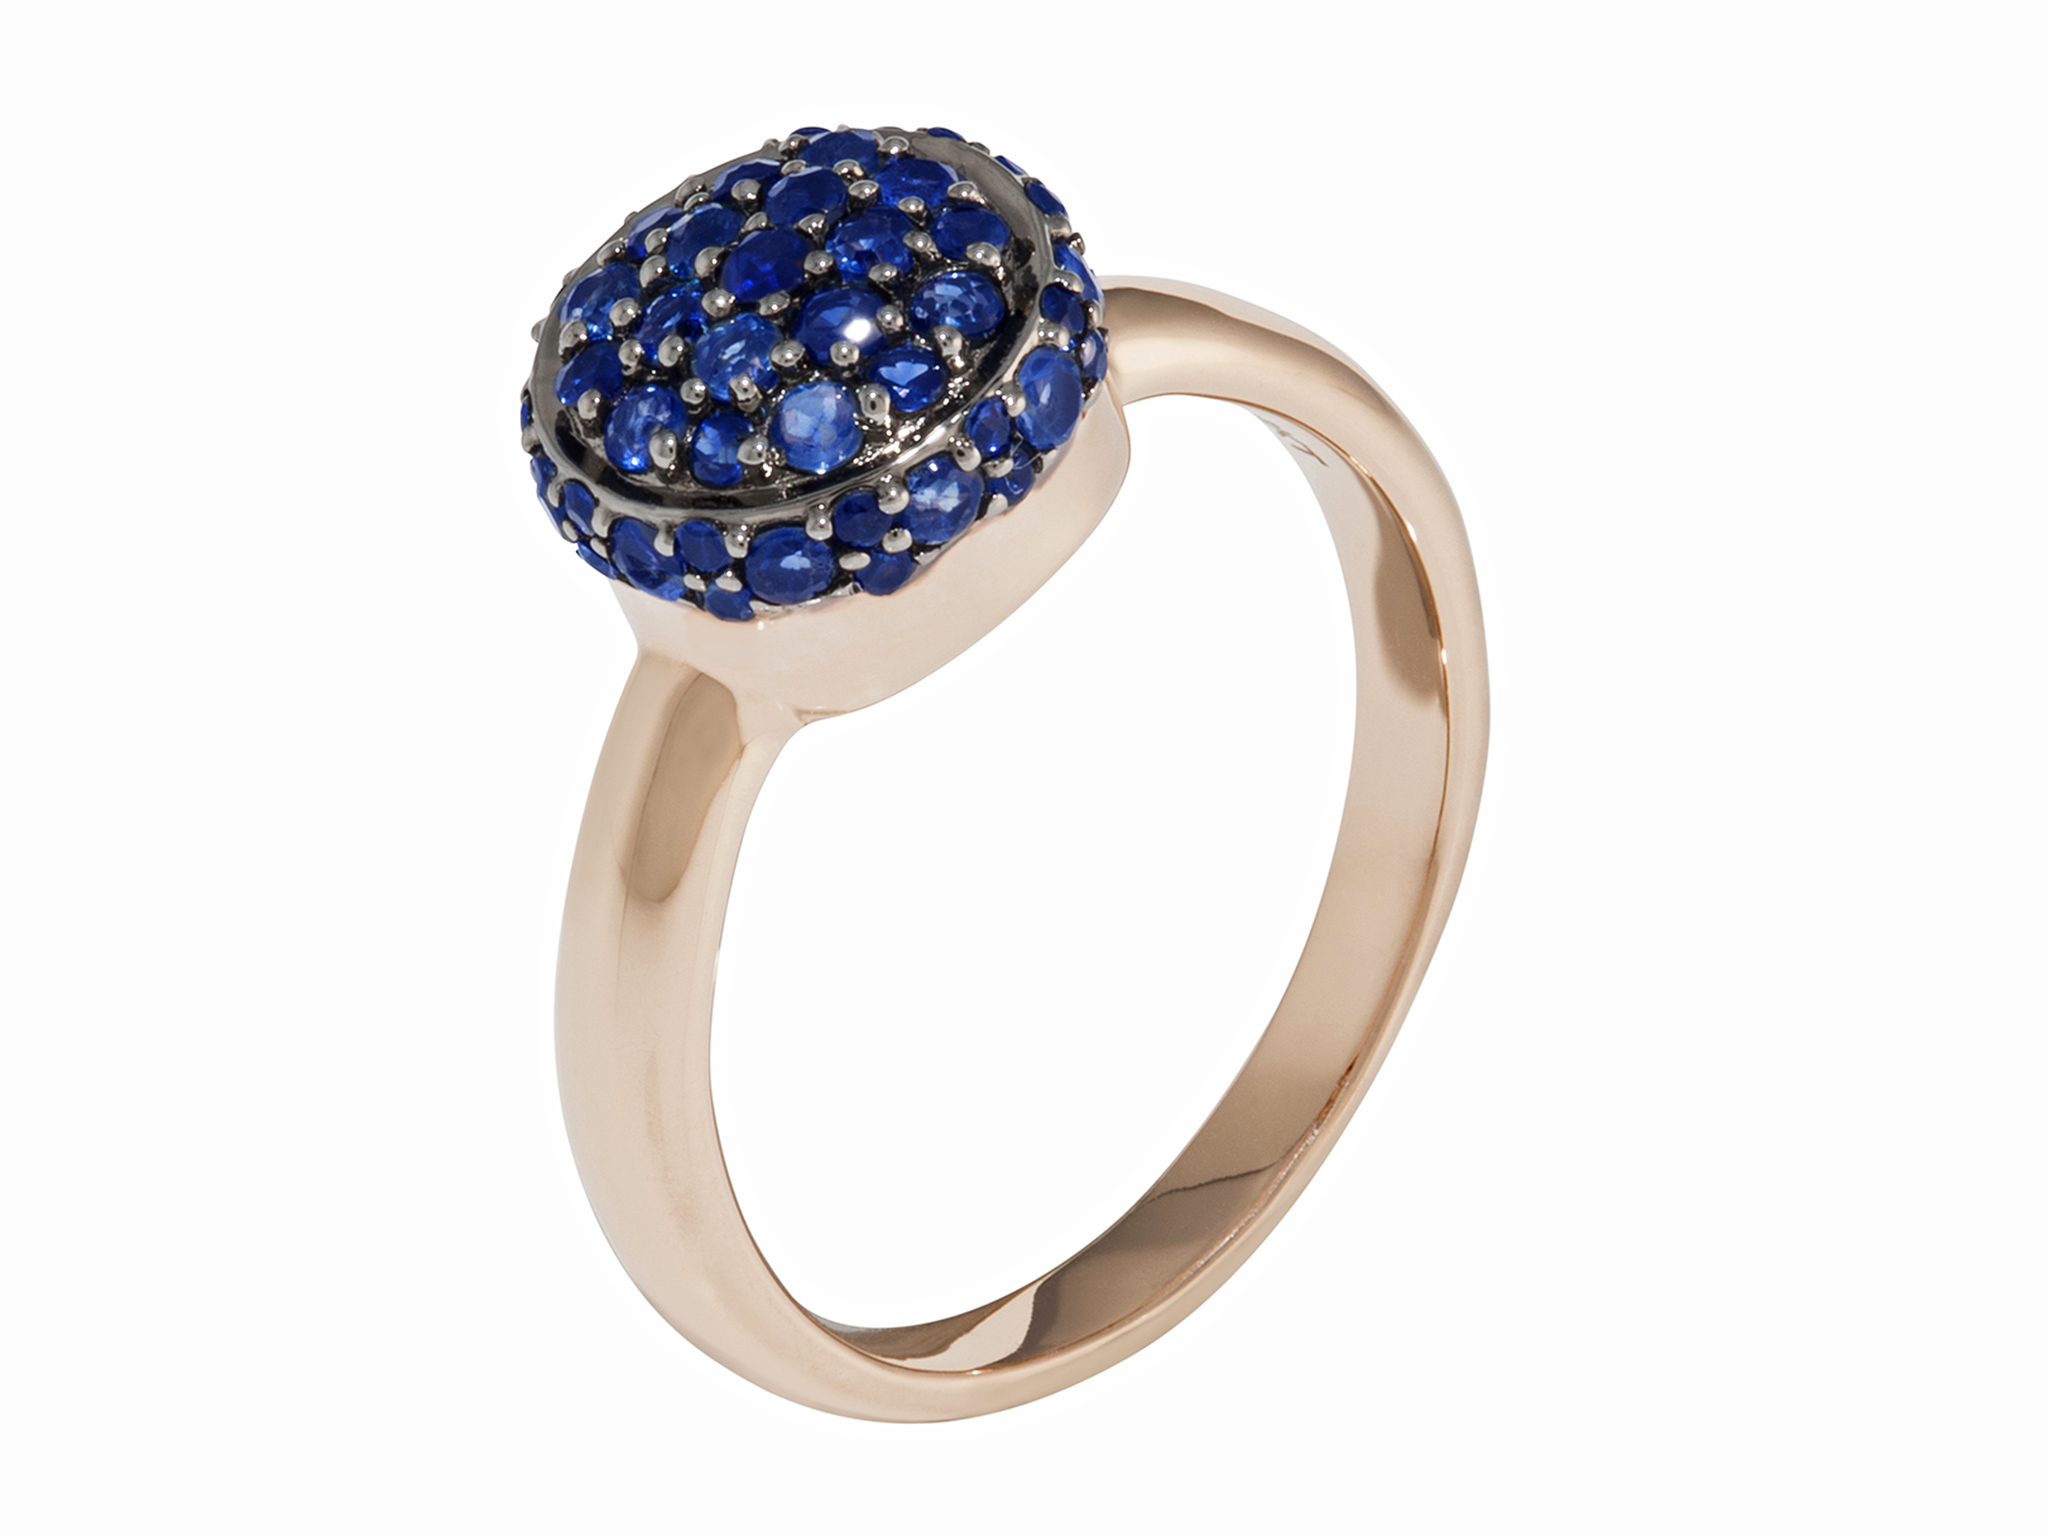 jewellery devotion faberg pin ring rings blue sapphire